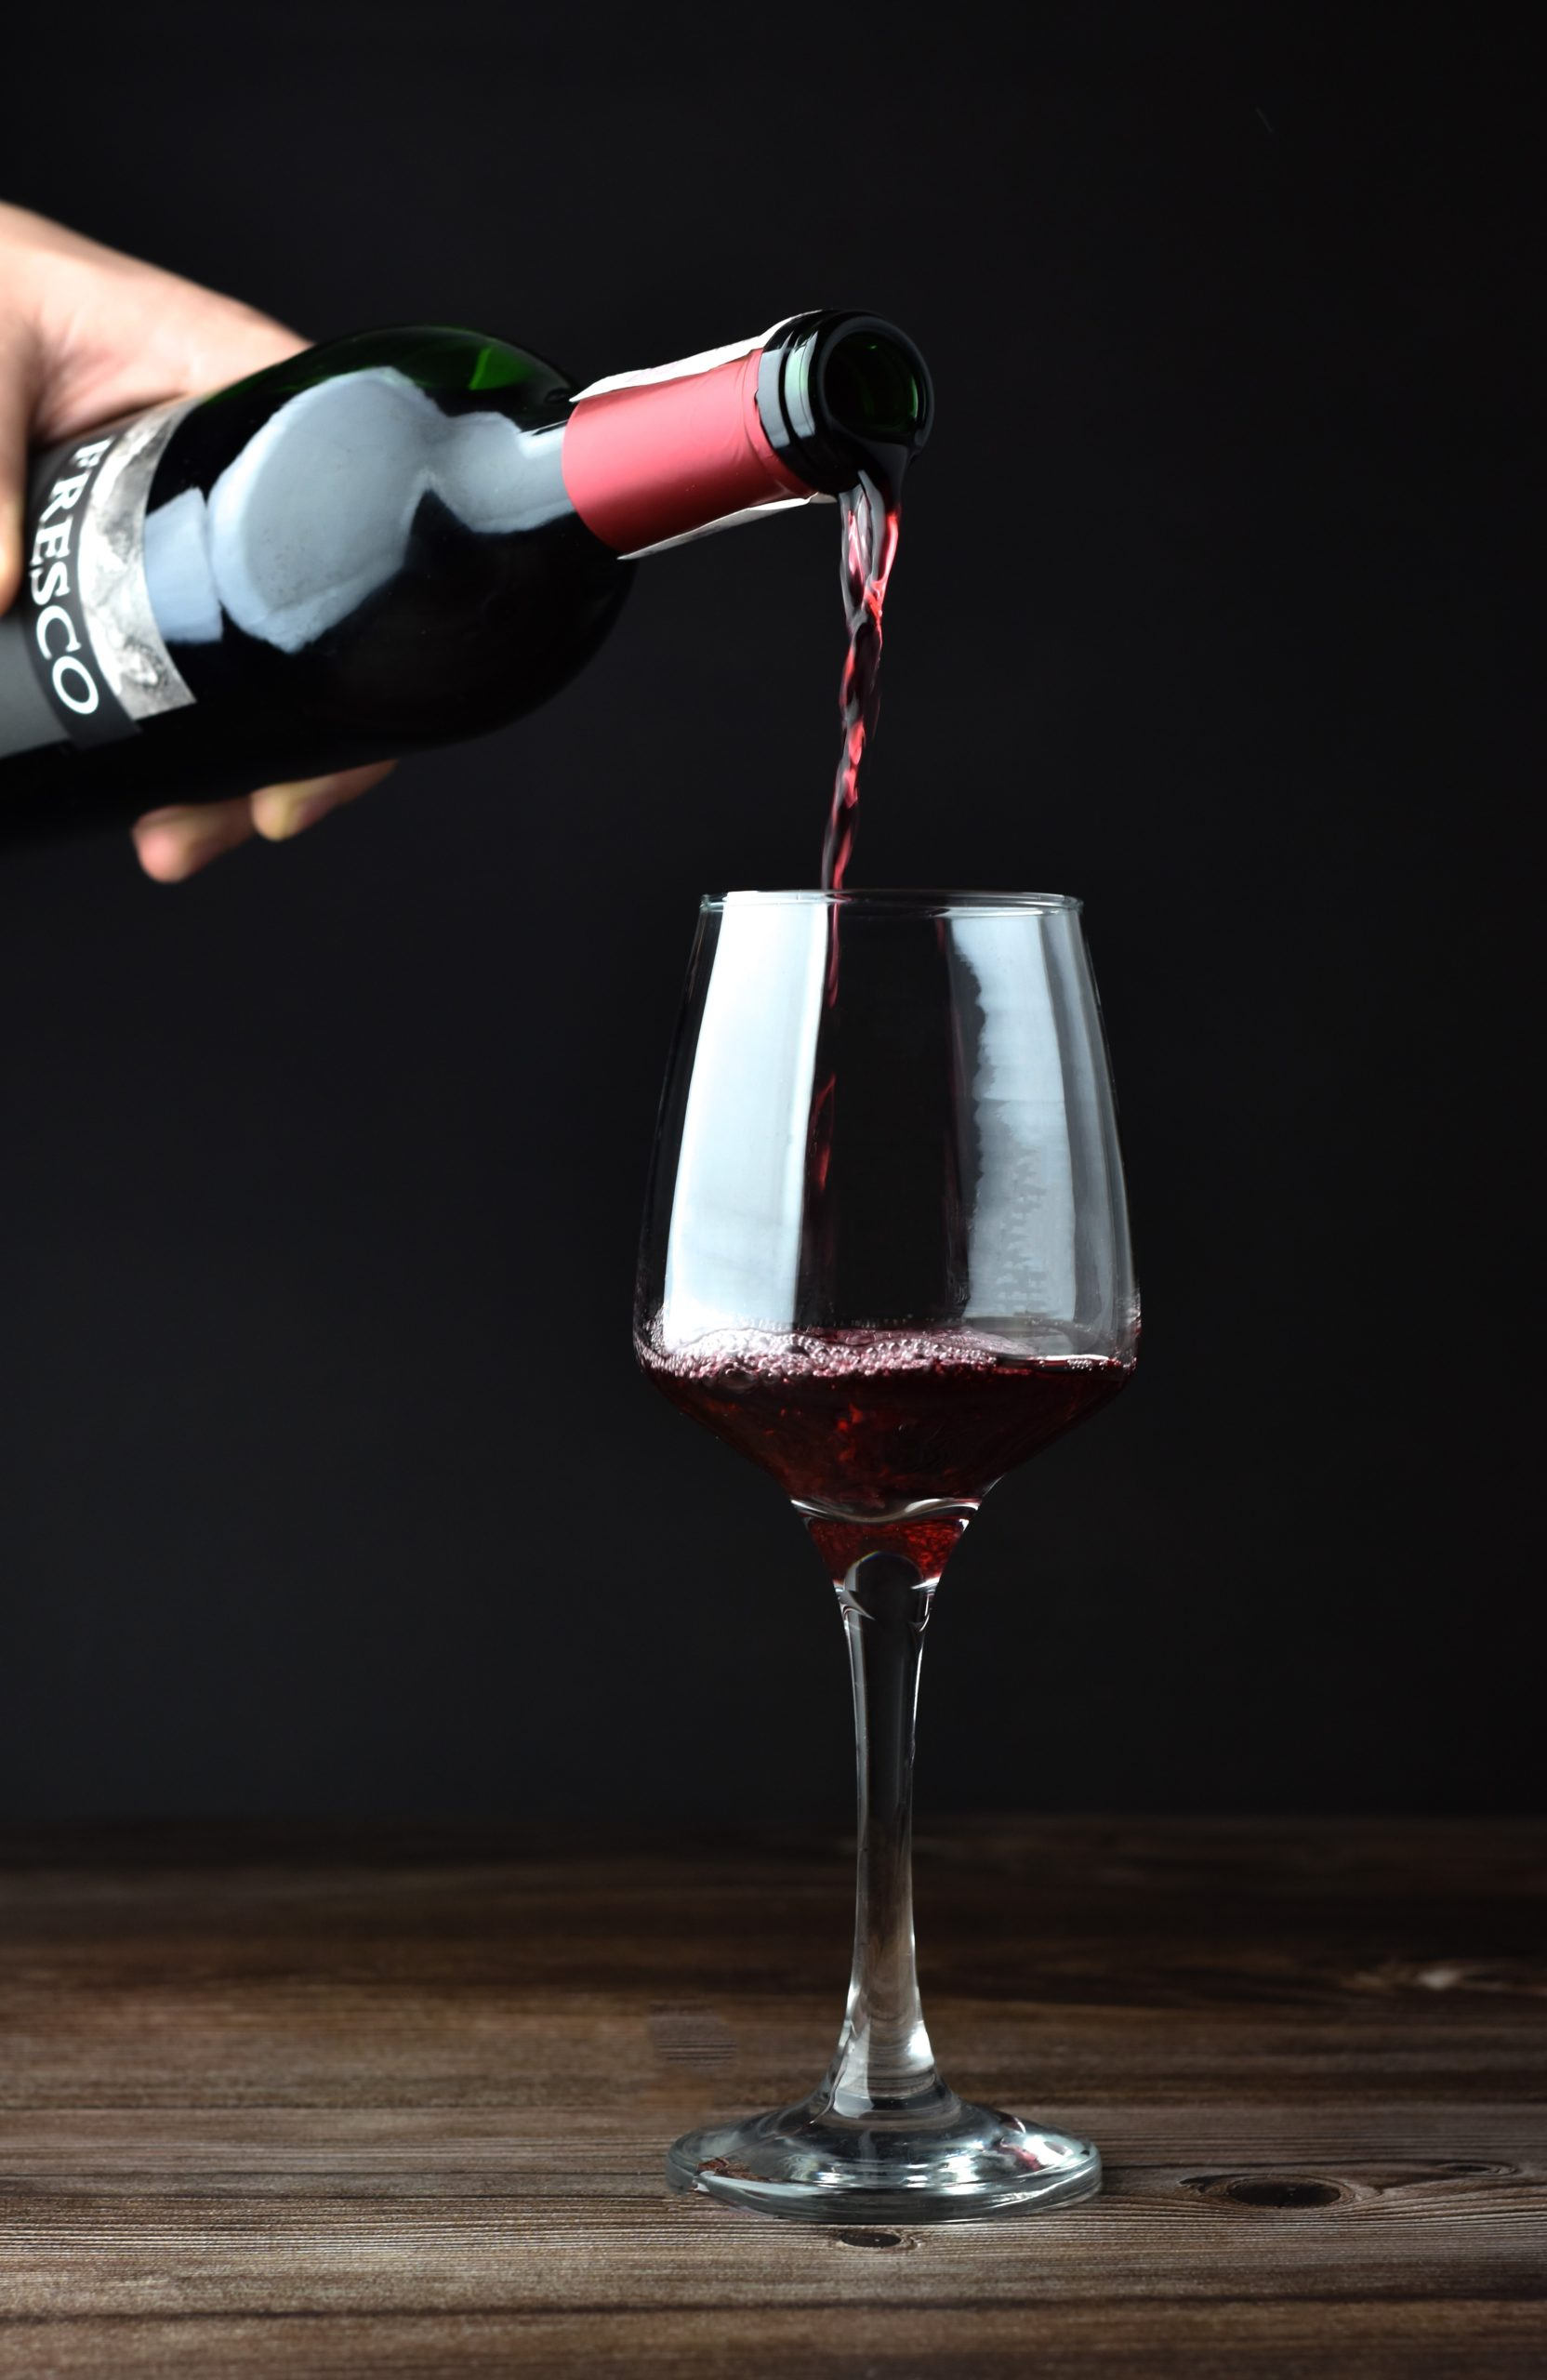 Tips for Safe Drinking